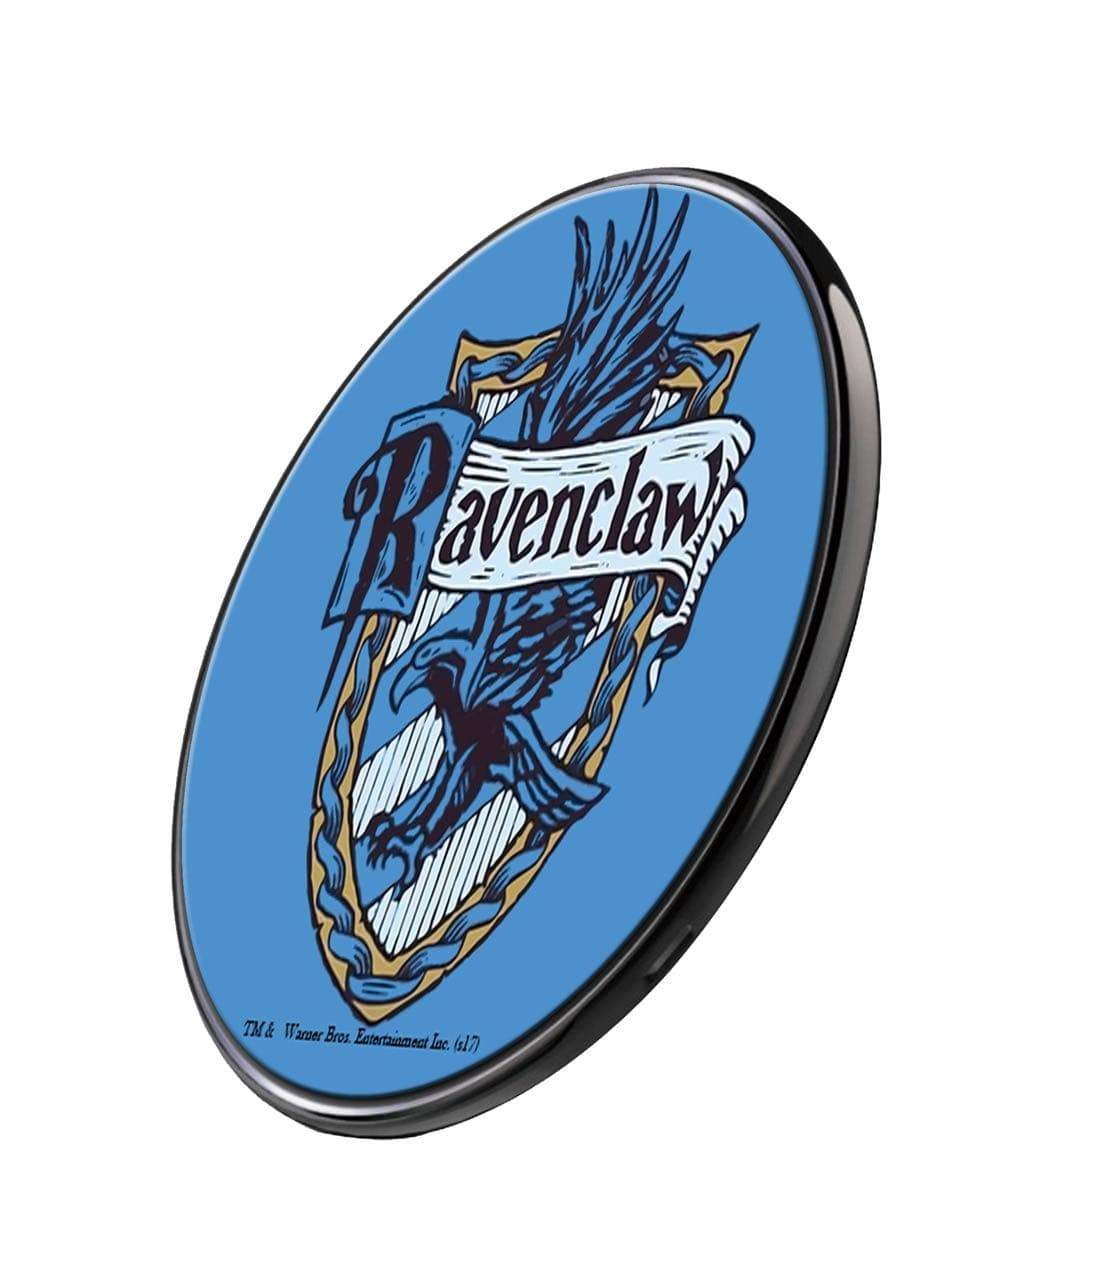 Crest Ravenclaw Wireless Charger by Macmerise -Macmerise - India - www.superherotoystore.com